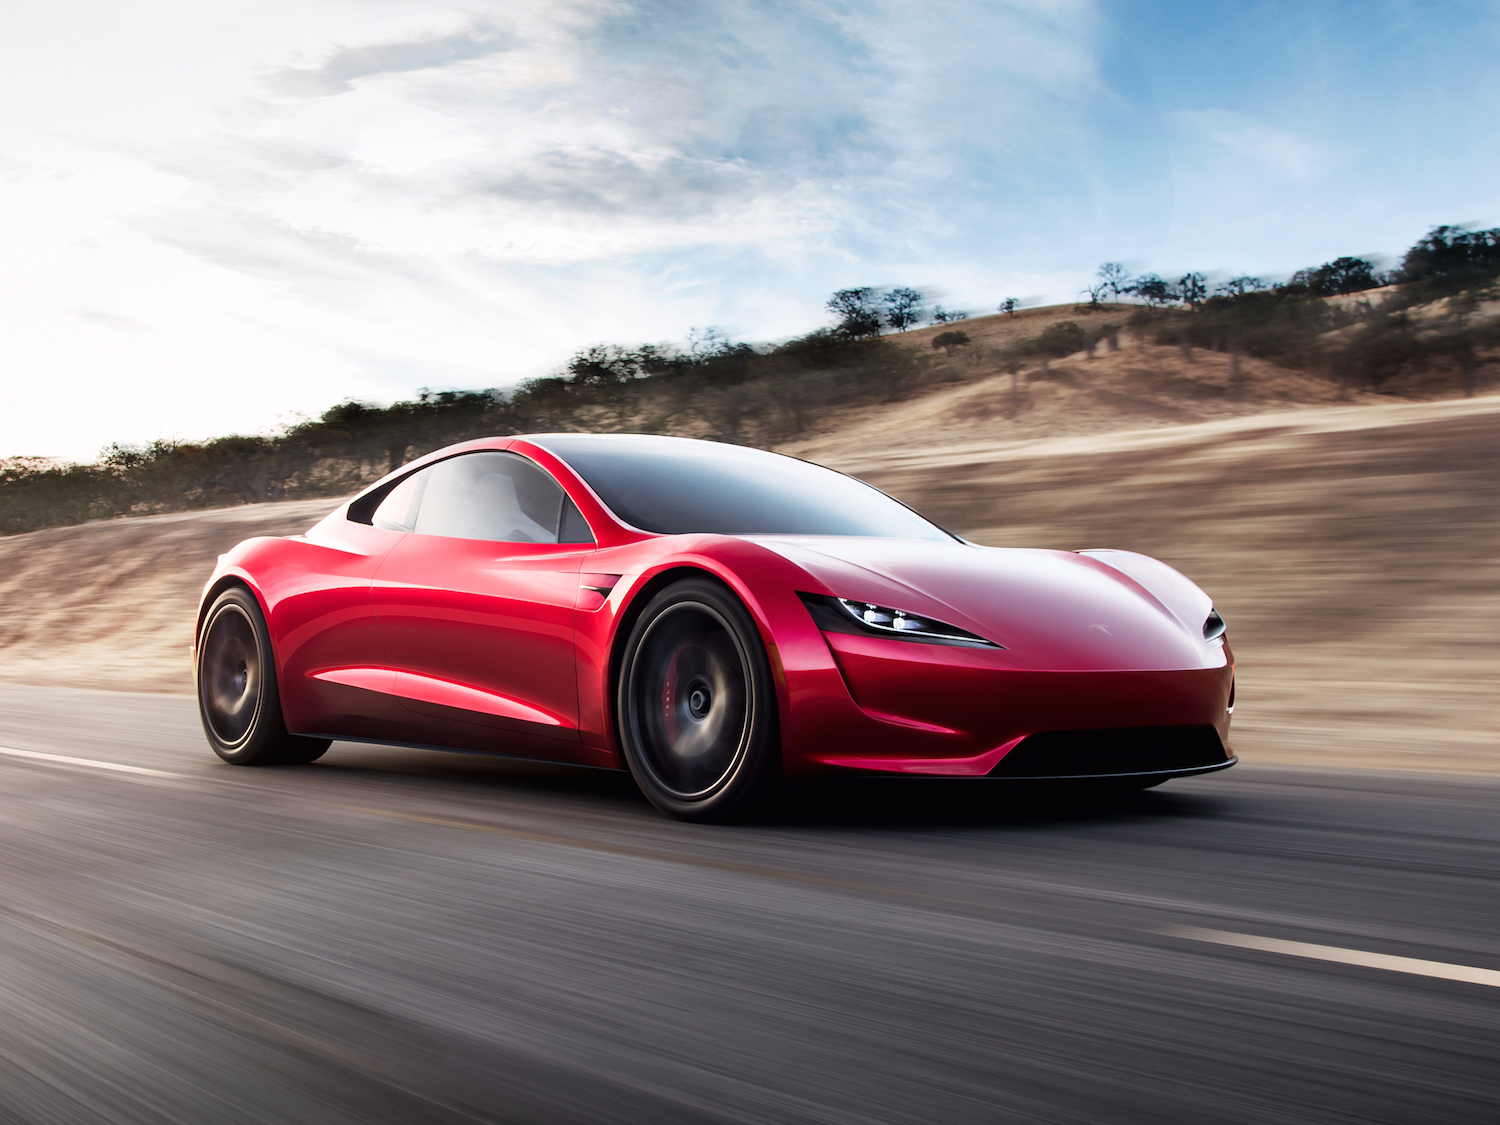 58 Concept of The 2020 Tesla Roadster Redesign and Concept by The 2020 Tesla Roadster